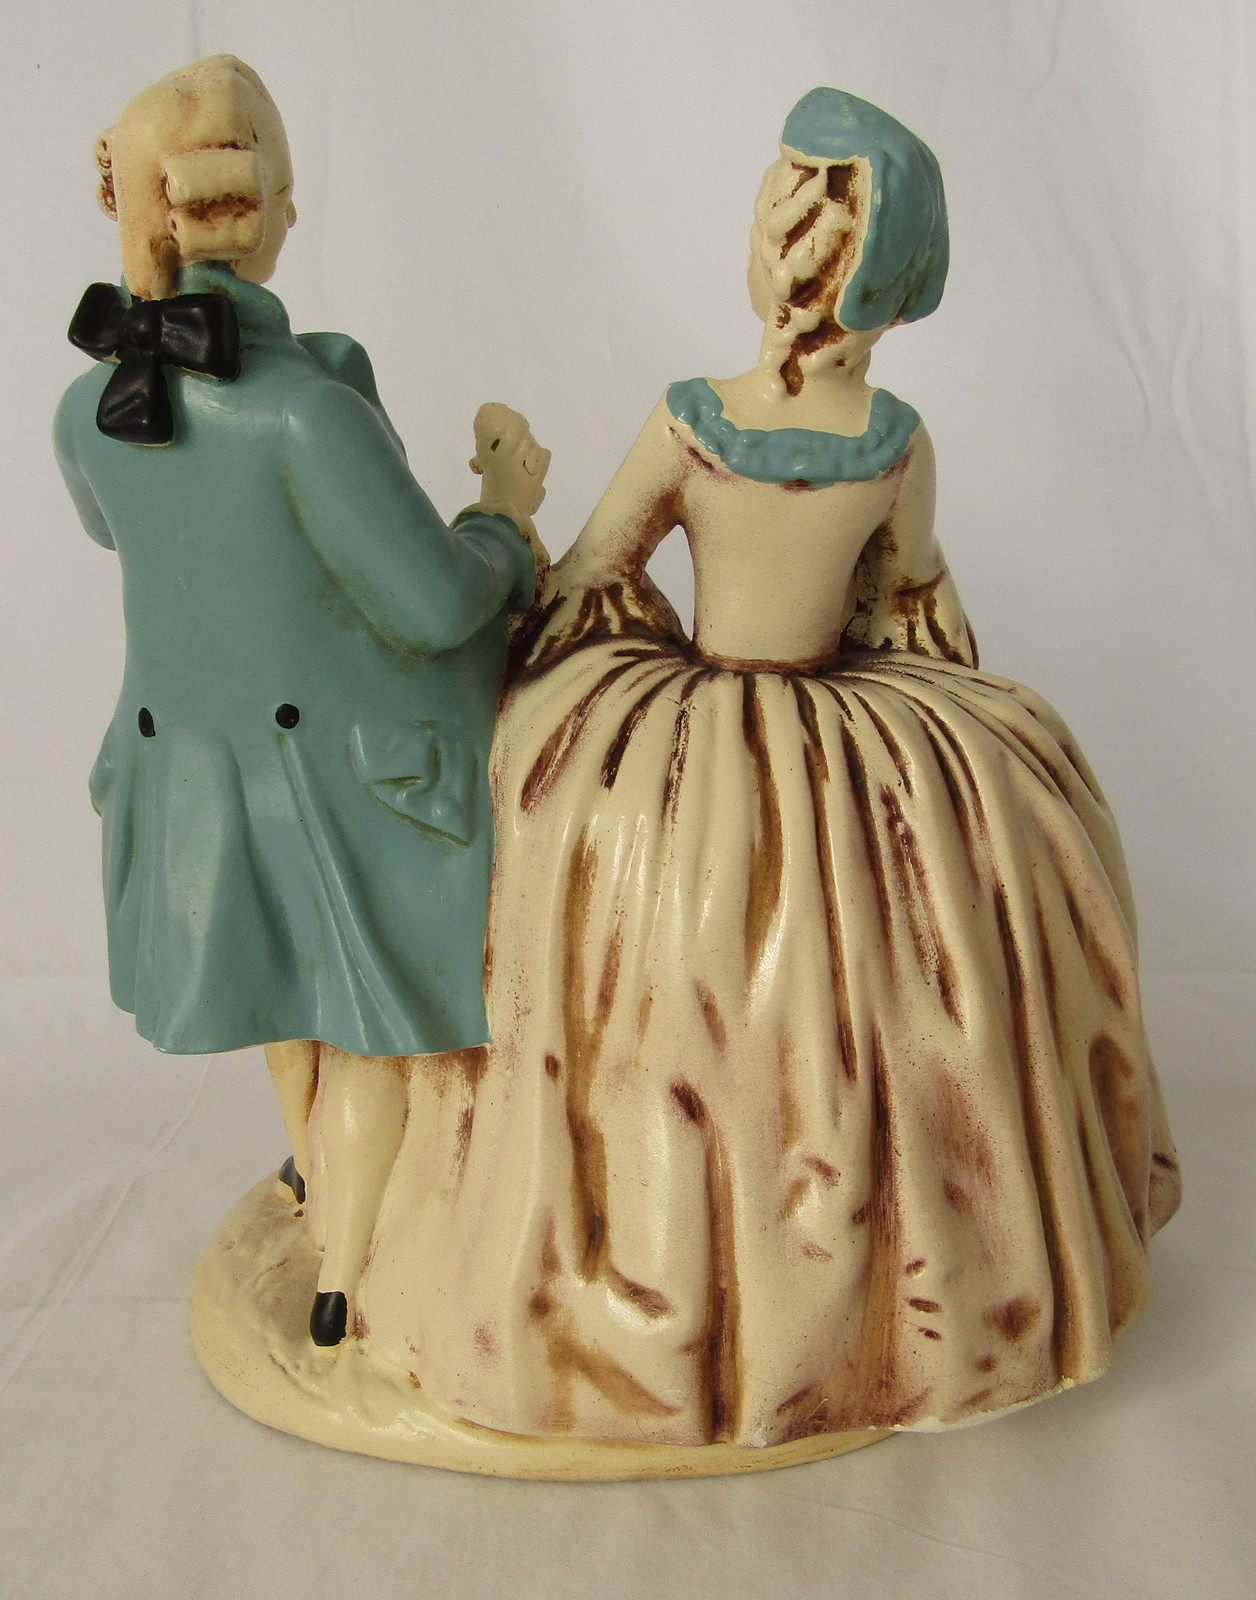 French Period Dress Dancing Couple Small Statue, Elegant Home Decor